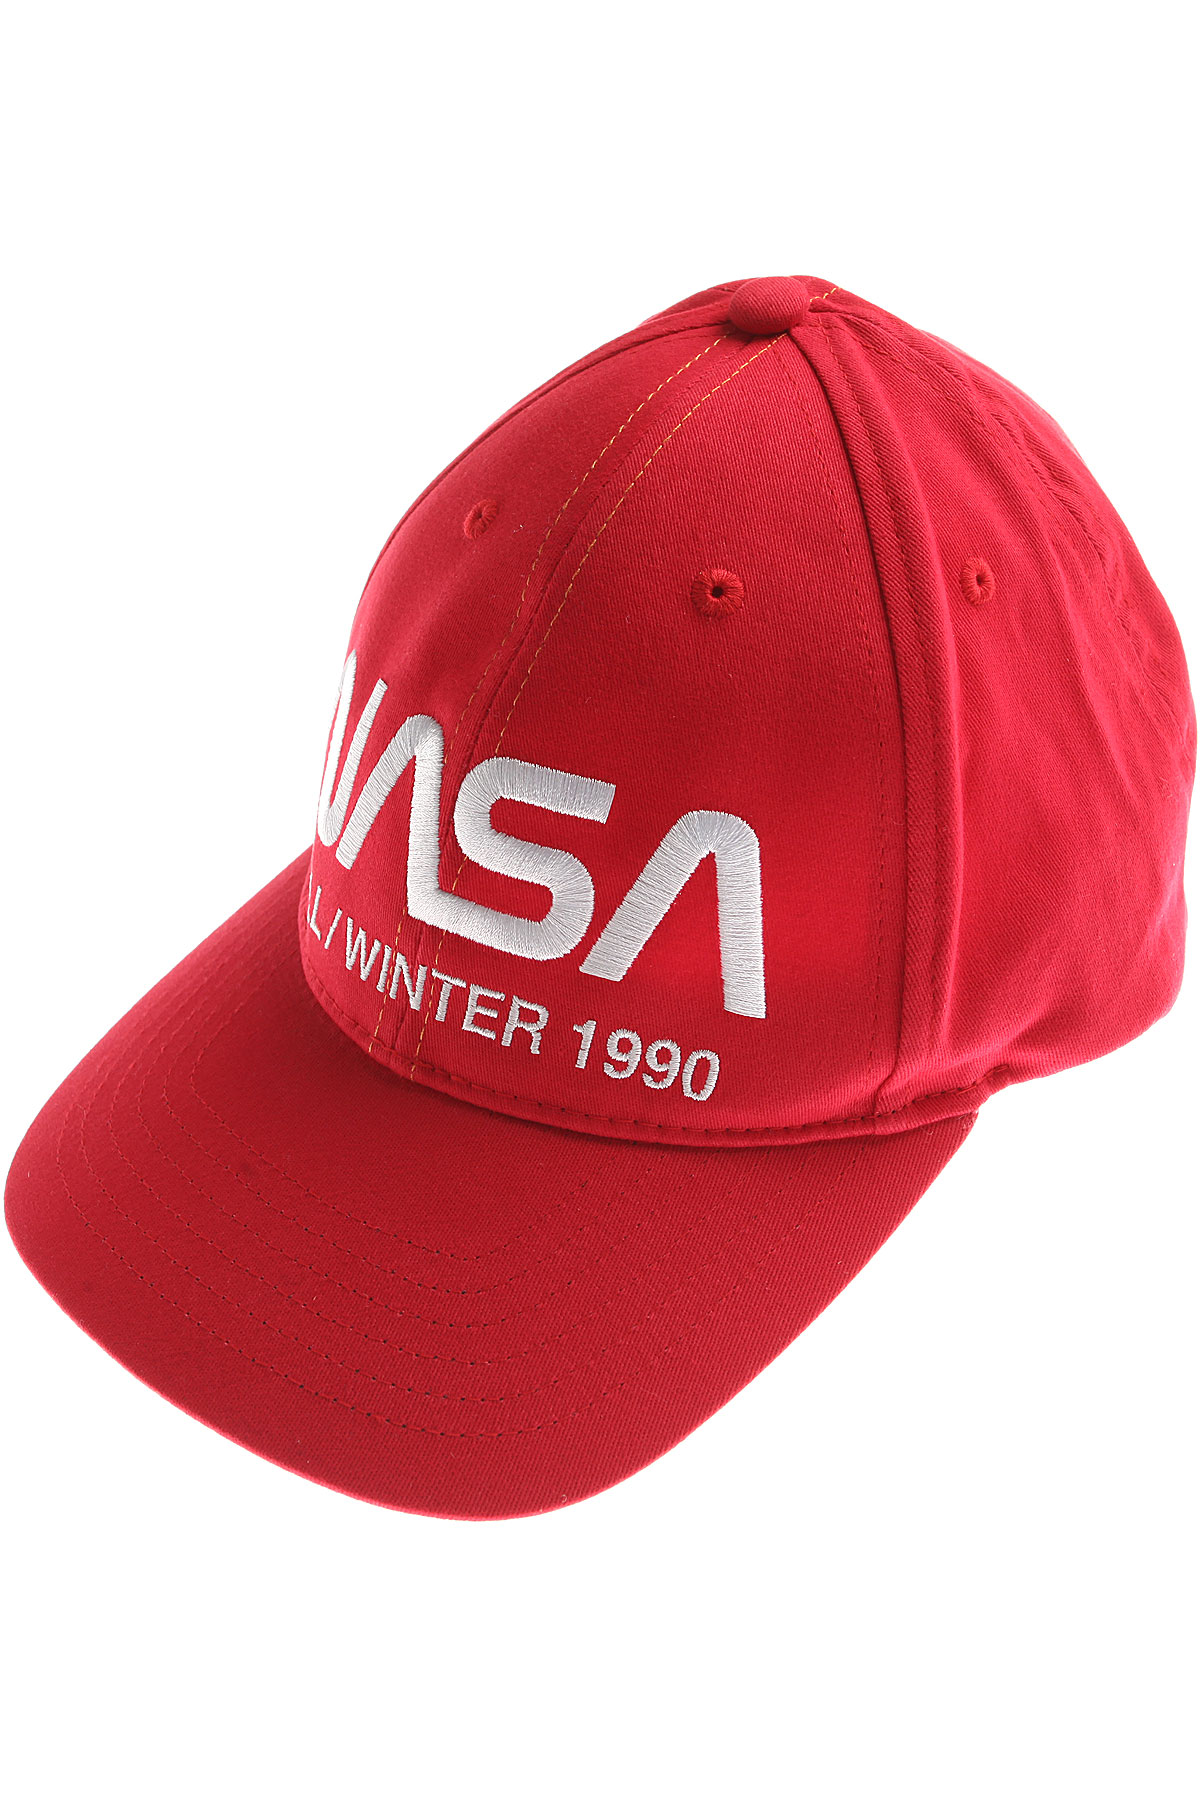 Image of Heron Preston Hat for Women, Red, Cotton, 2017